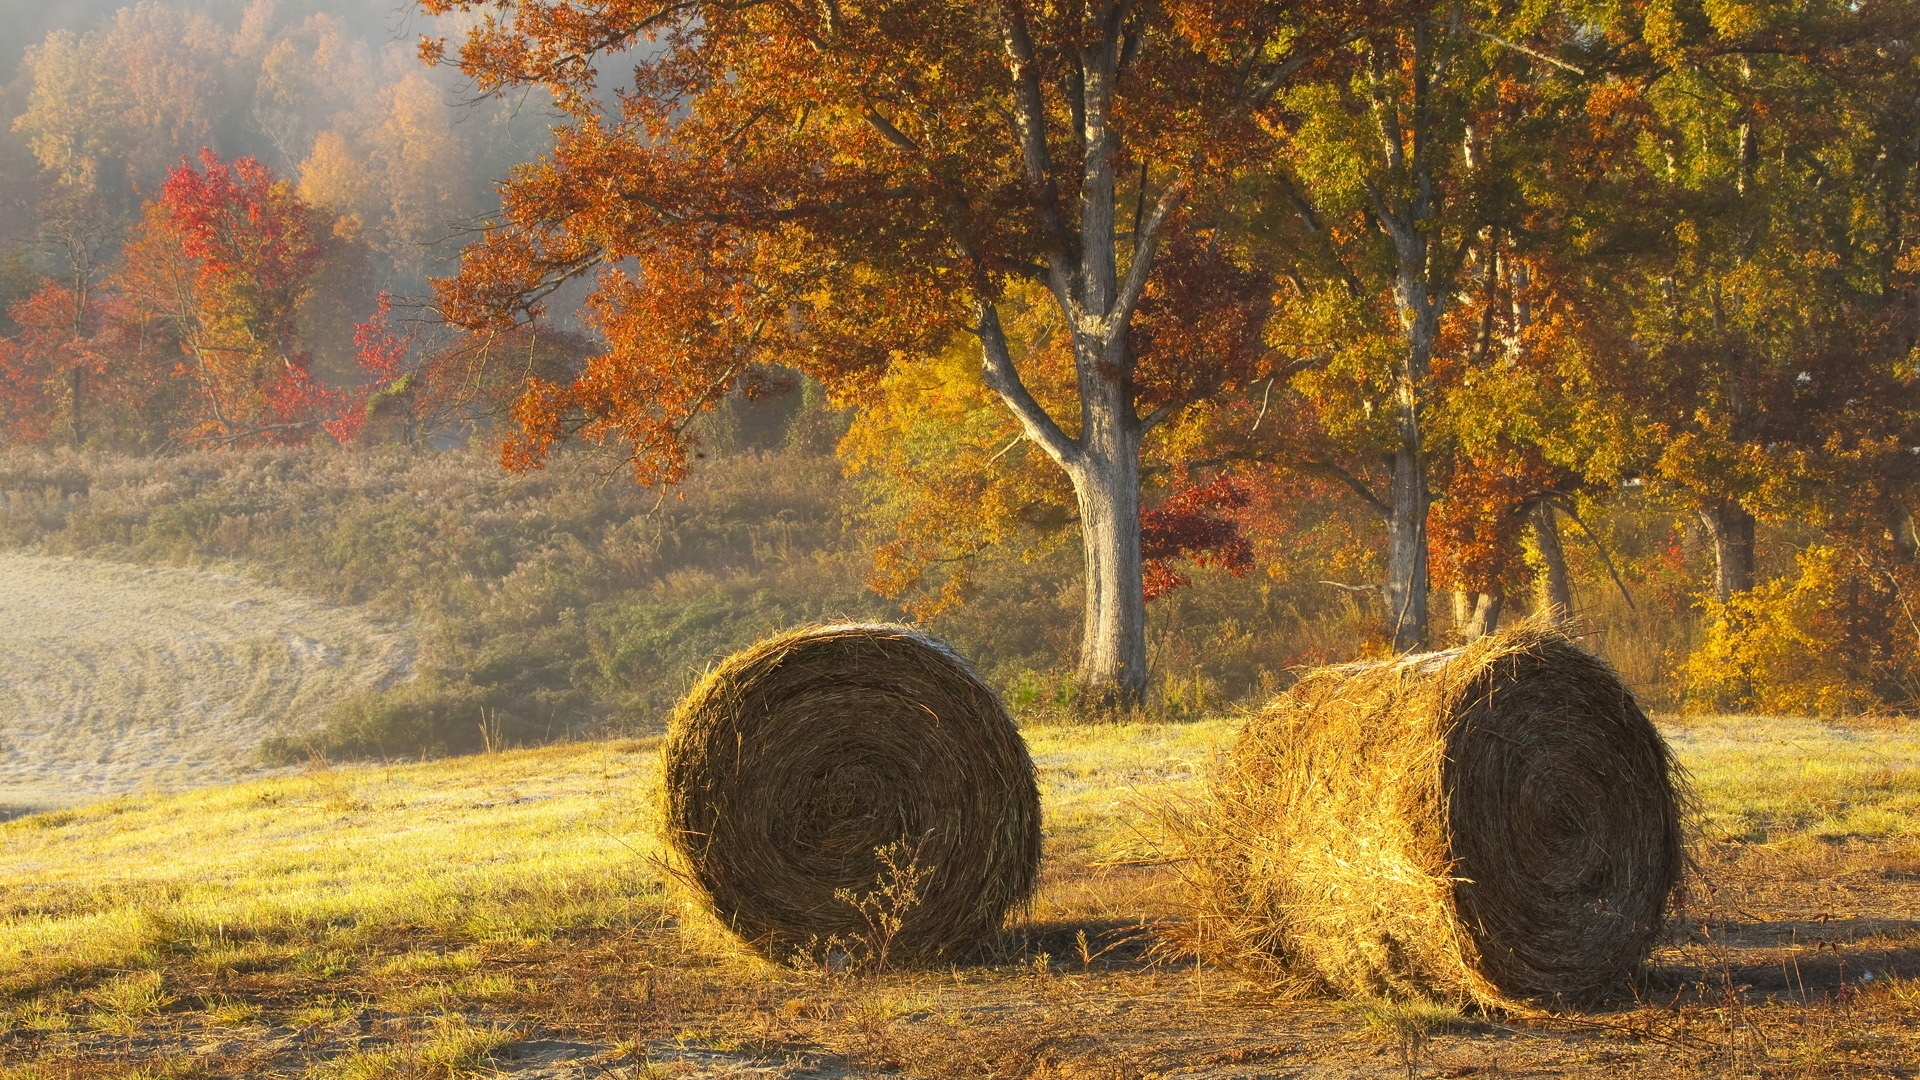 Fall Harvest Wallpaper Hd Hay Bale Hd Wallpapers Full Hd Pictures